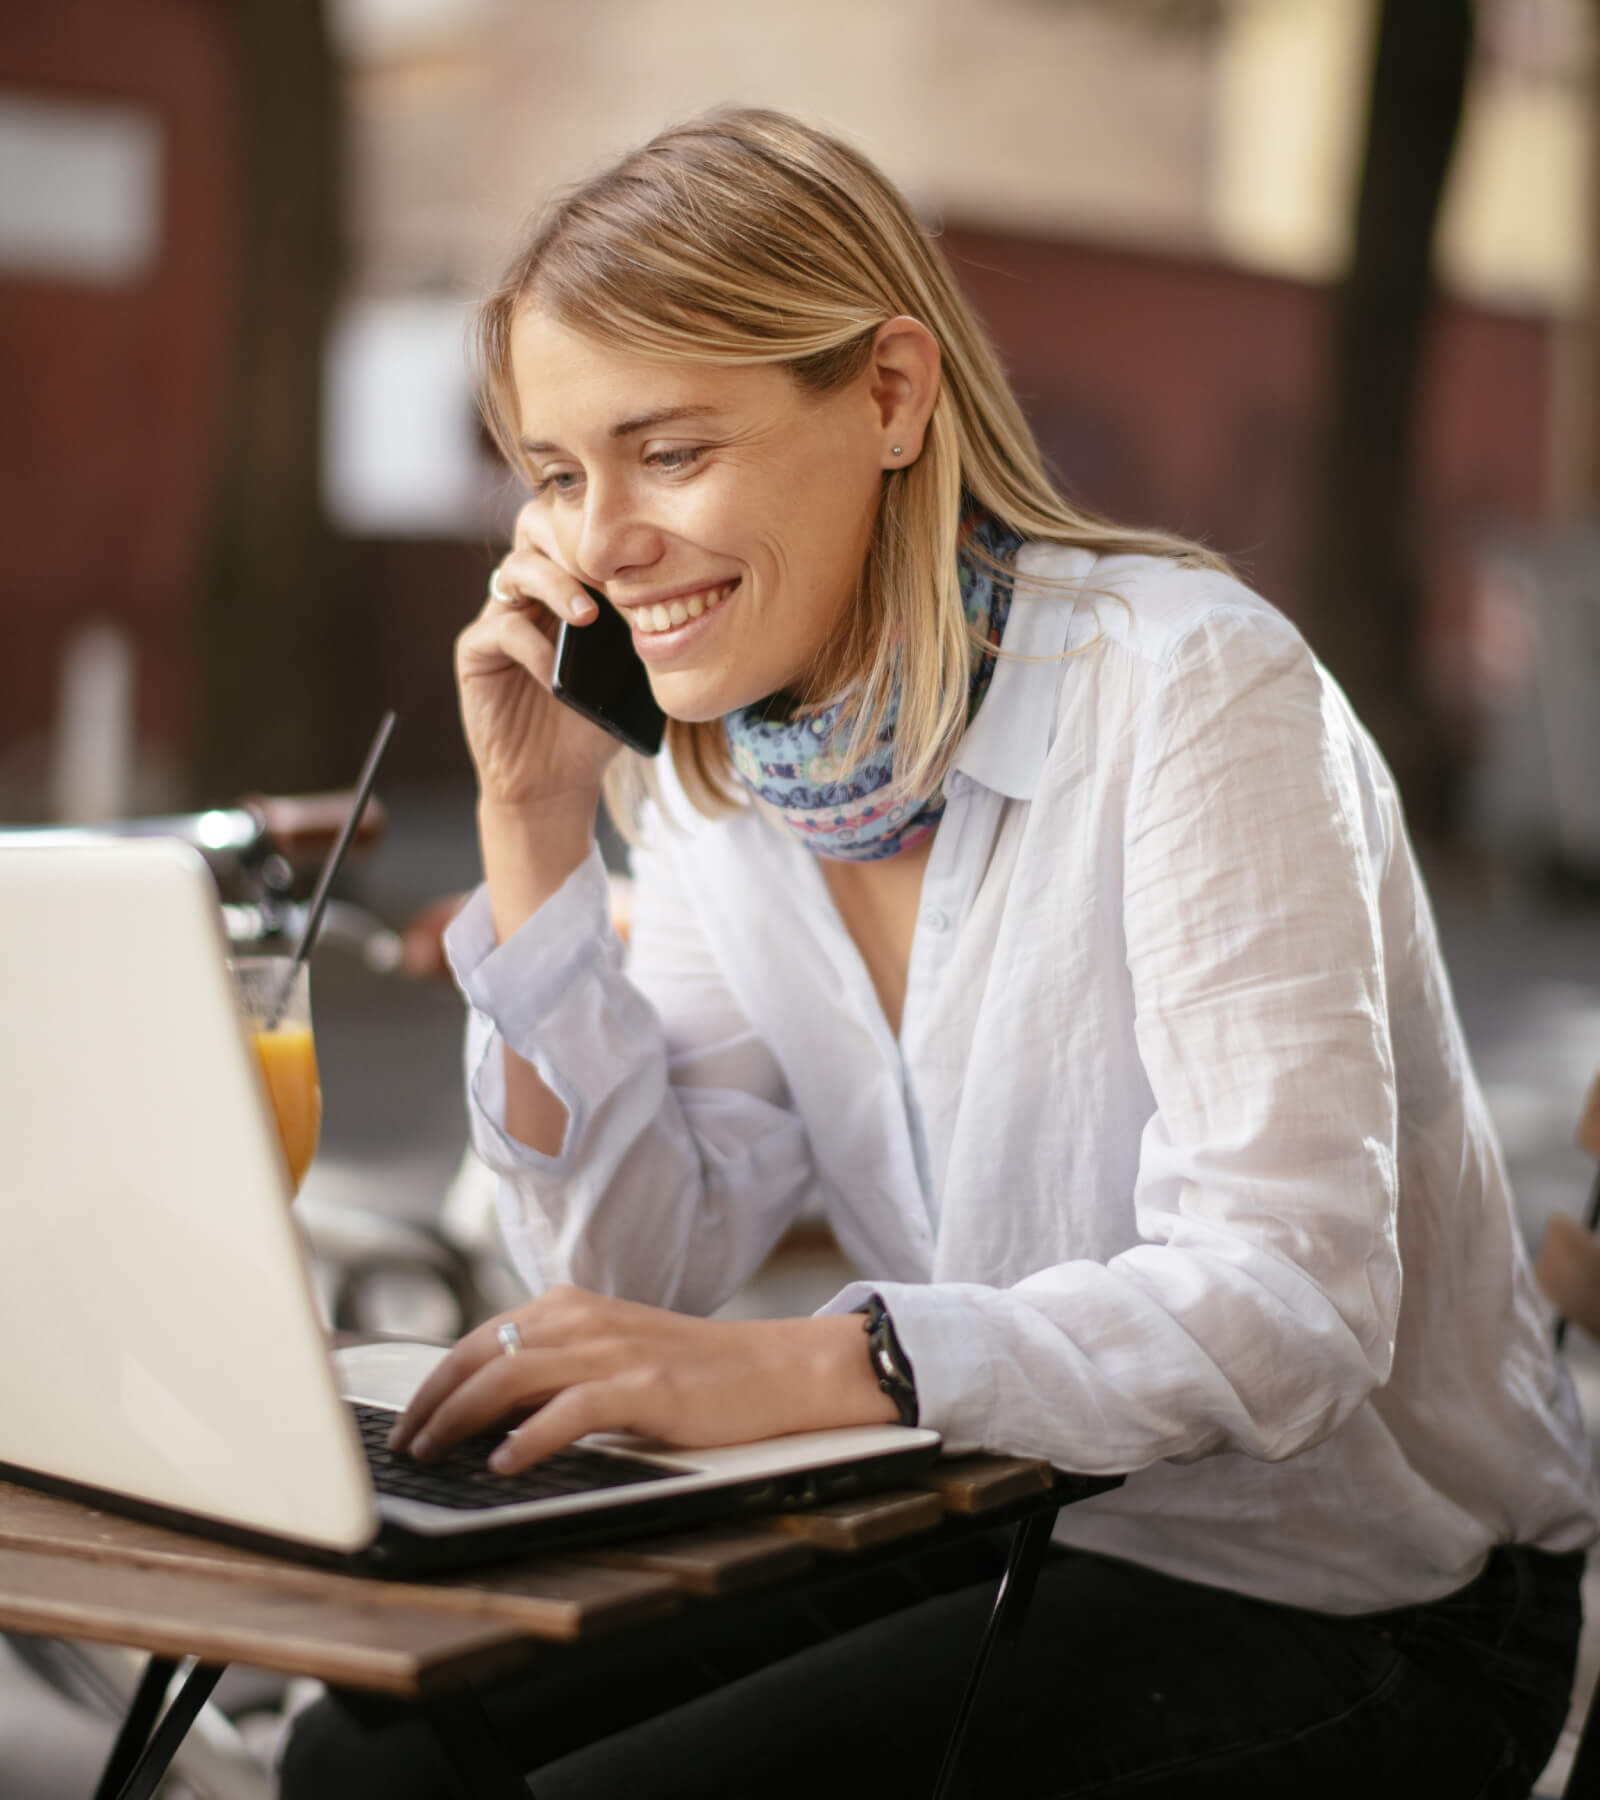 Smiling women making an online payment from mail while speaking on a call